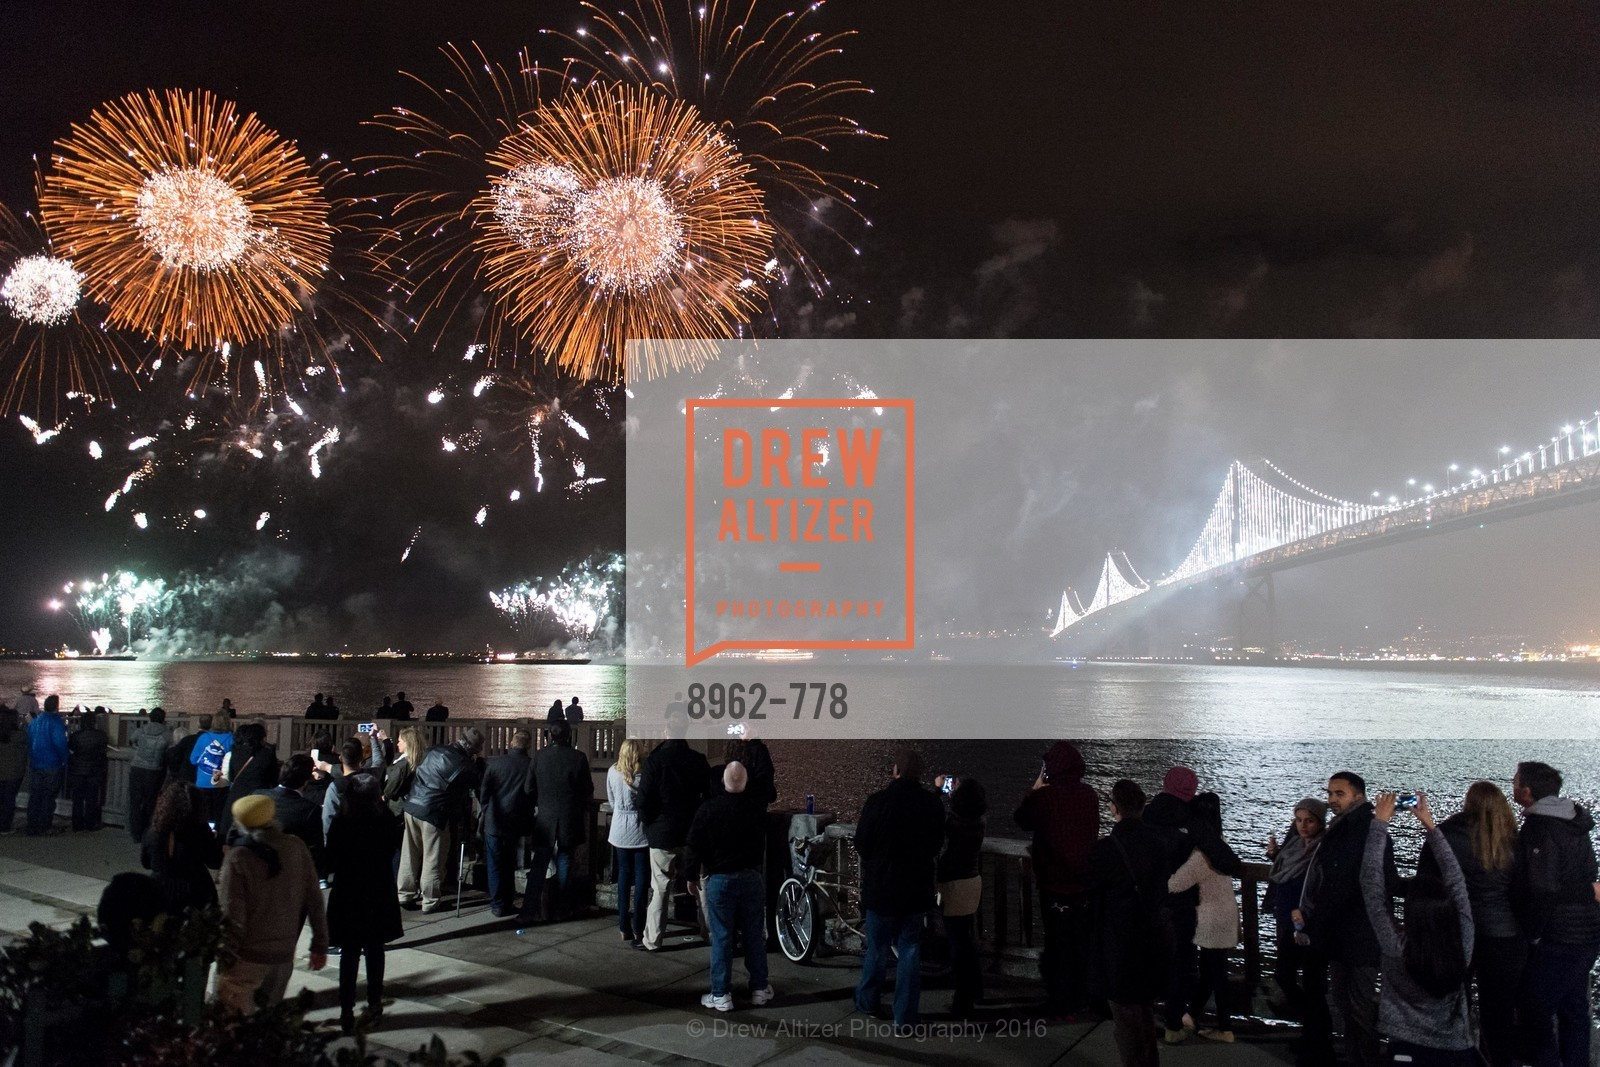 Extras, The Bay Lights Grand Relighting Celebration, January 29th, 2016, Photo,Drew Altizer, Drew Altizer Photography, full-service agency, private events, San Francisco photographer, photographer california